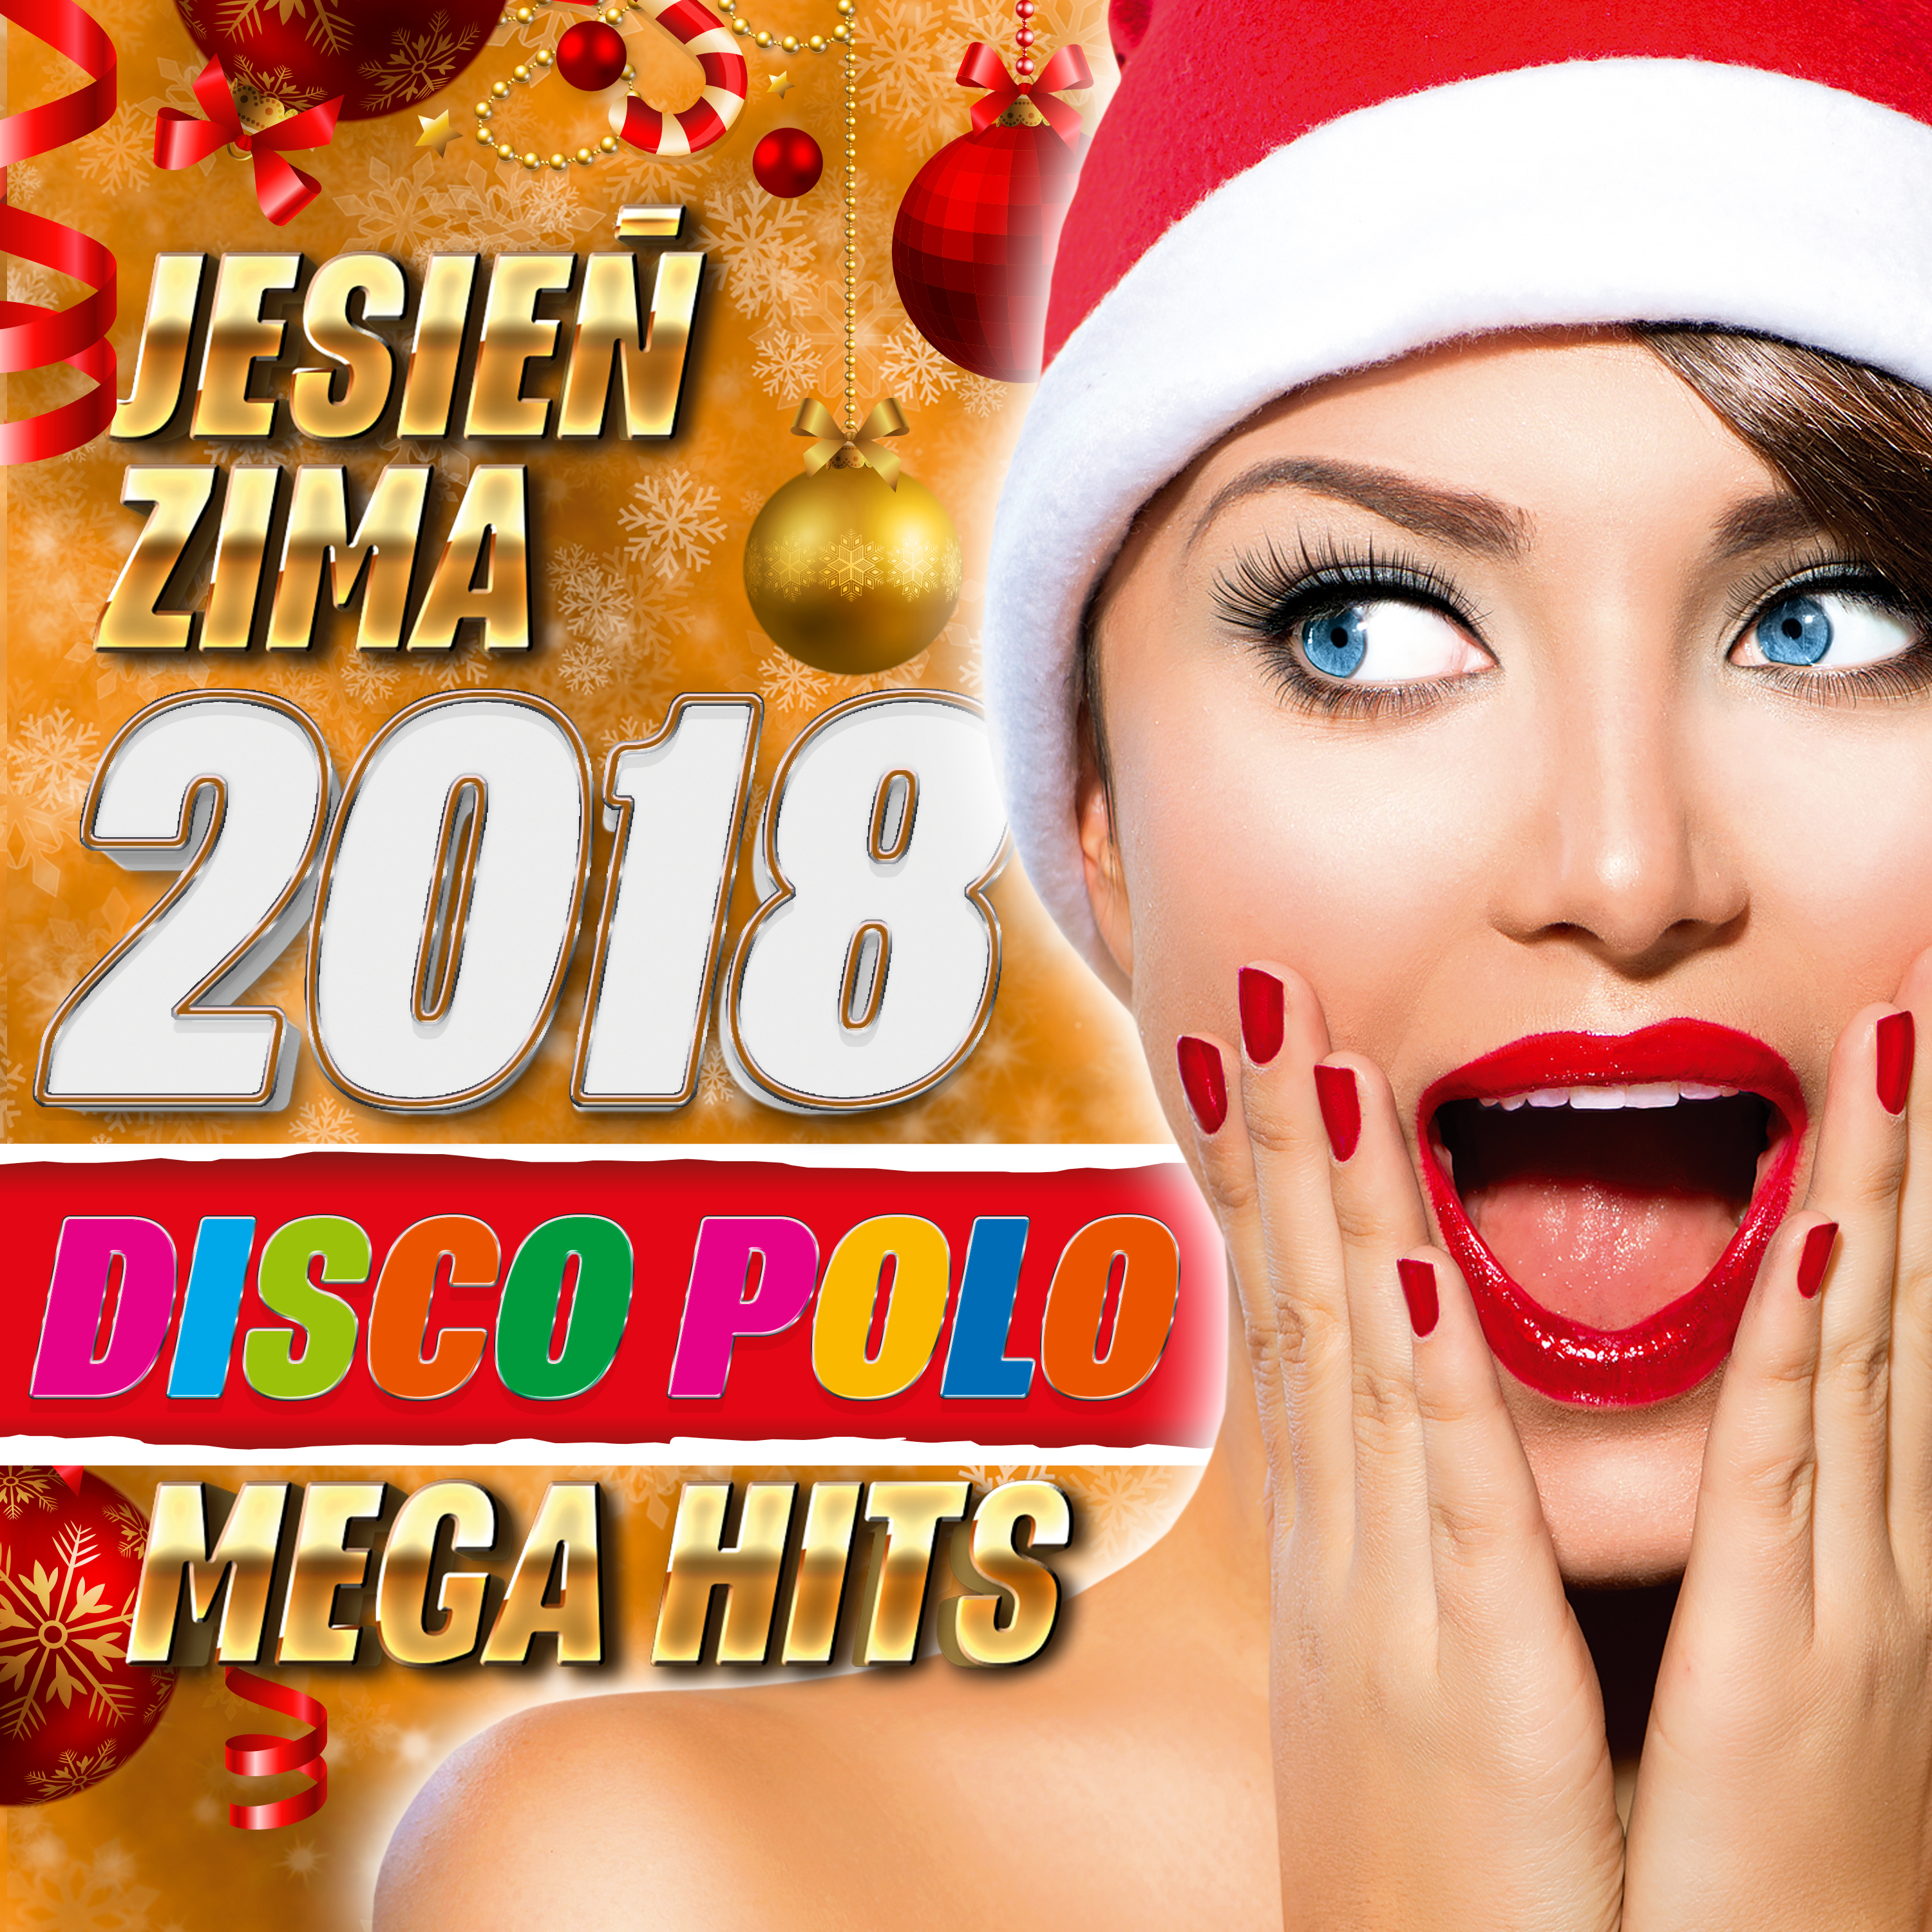 Jesien Zima 2018 Disco Polo Mega Hits